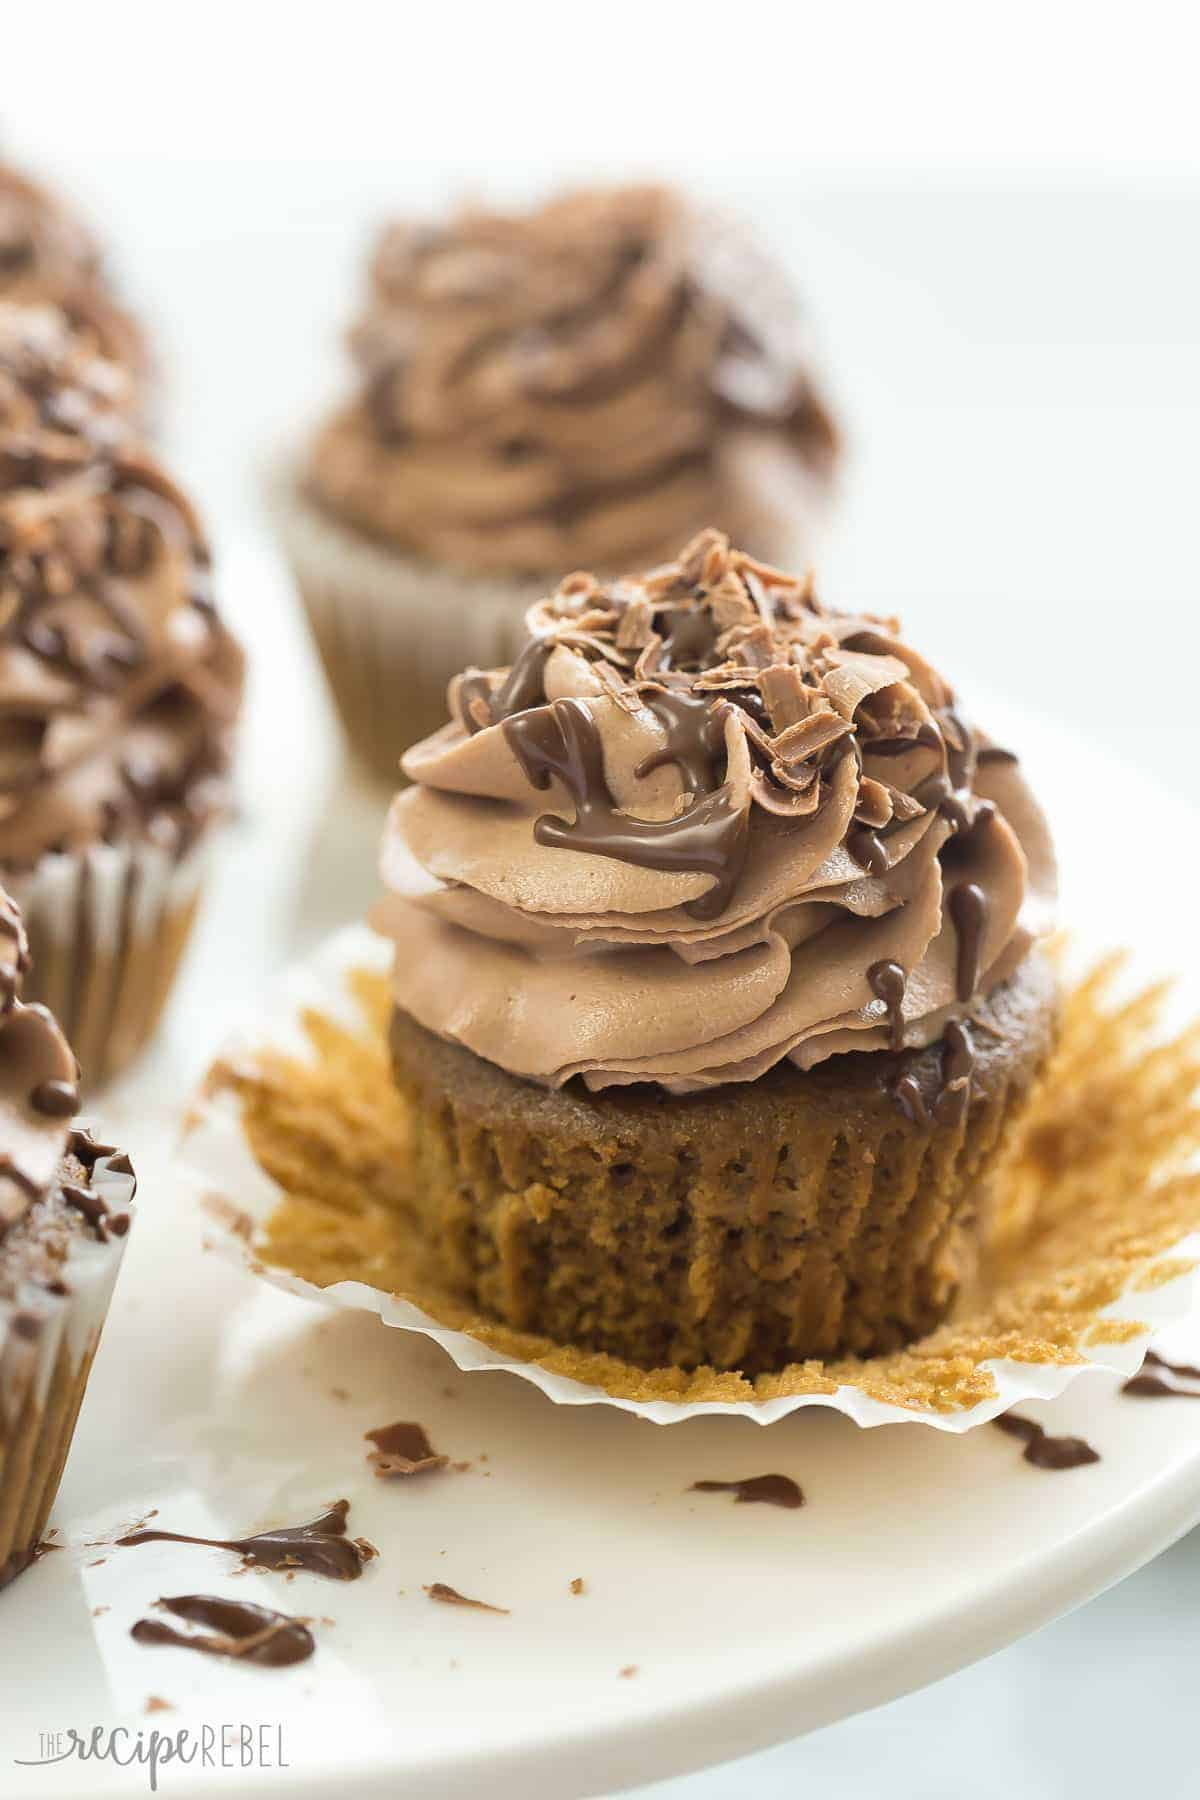 one mocha nutella cupcake on white plate unwrapped